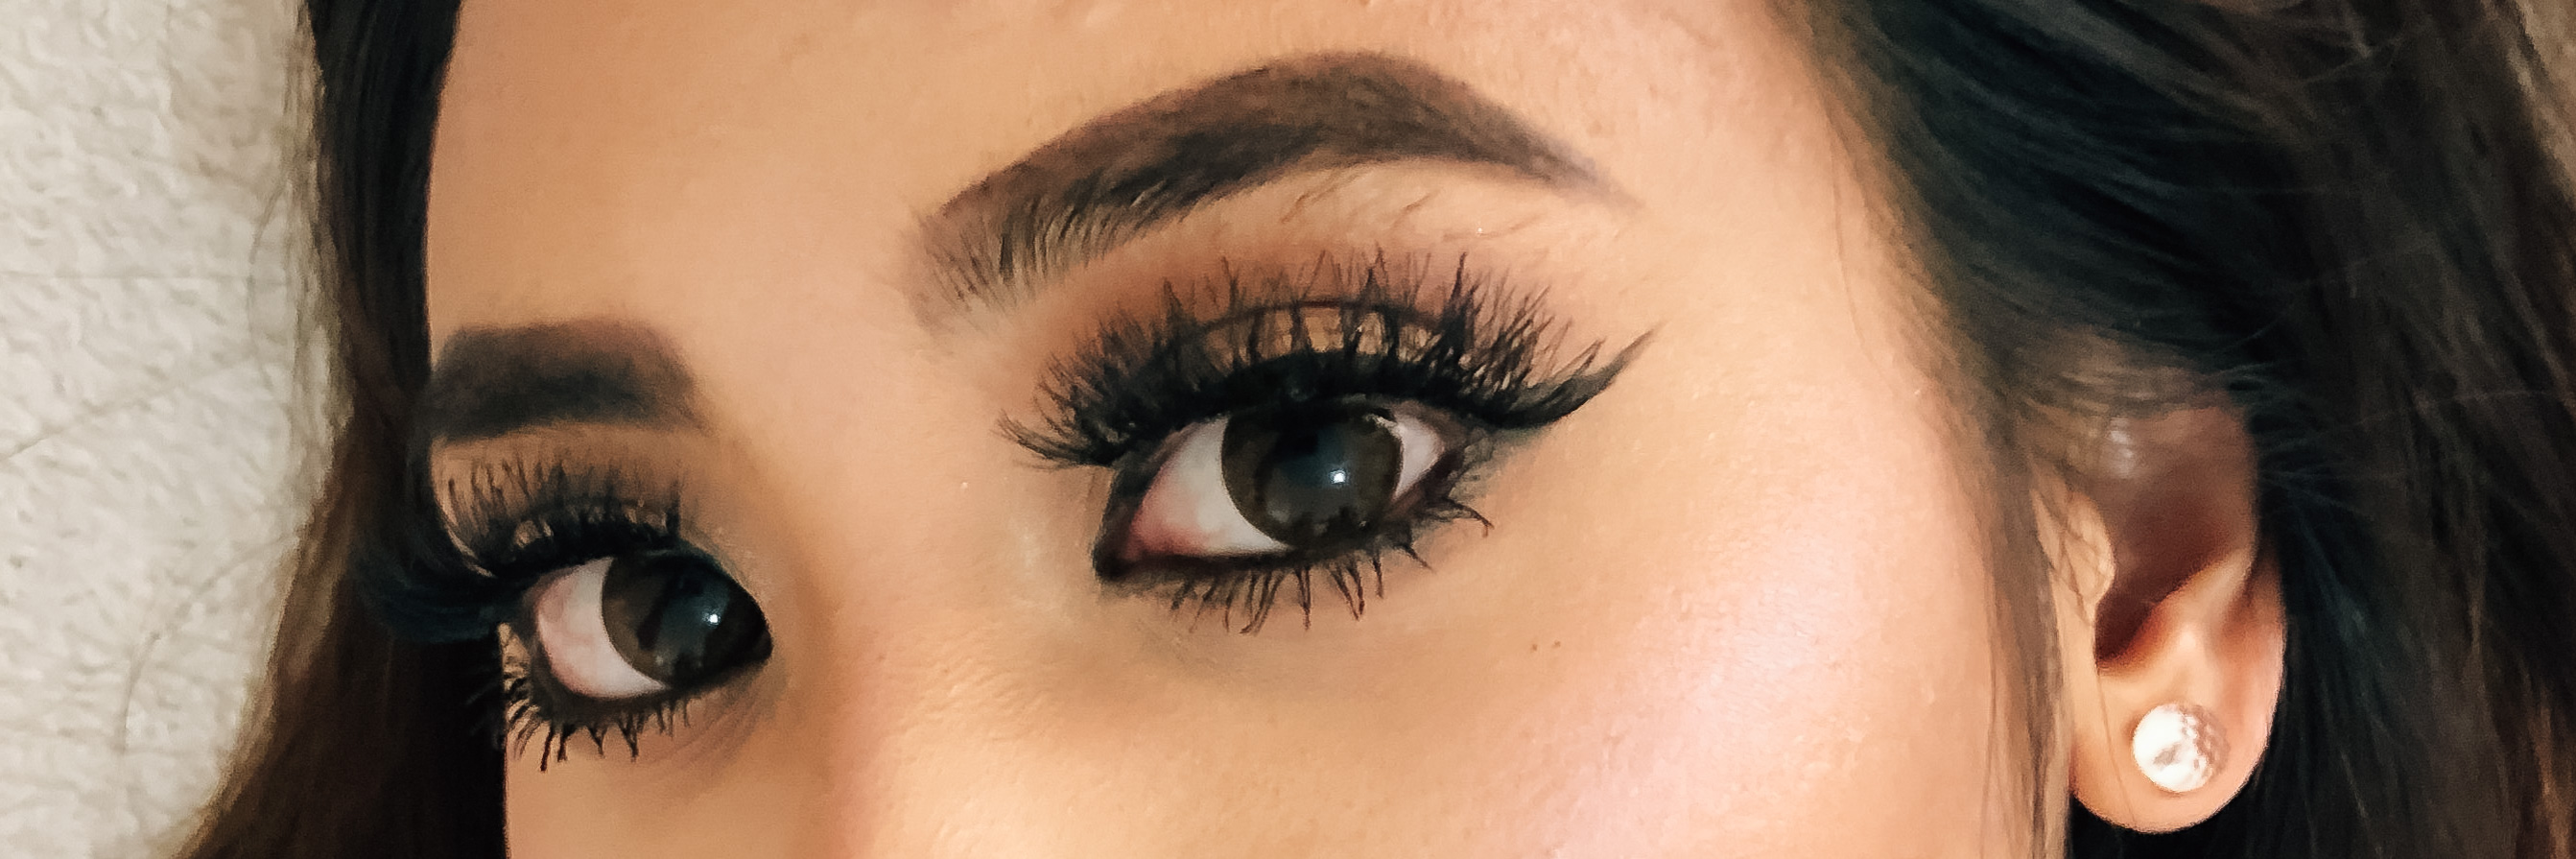 Ardell Magnetic Eyelashes Review Beauty Blog Lulu Meets World